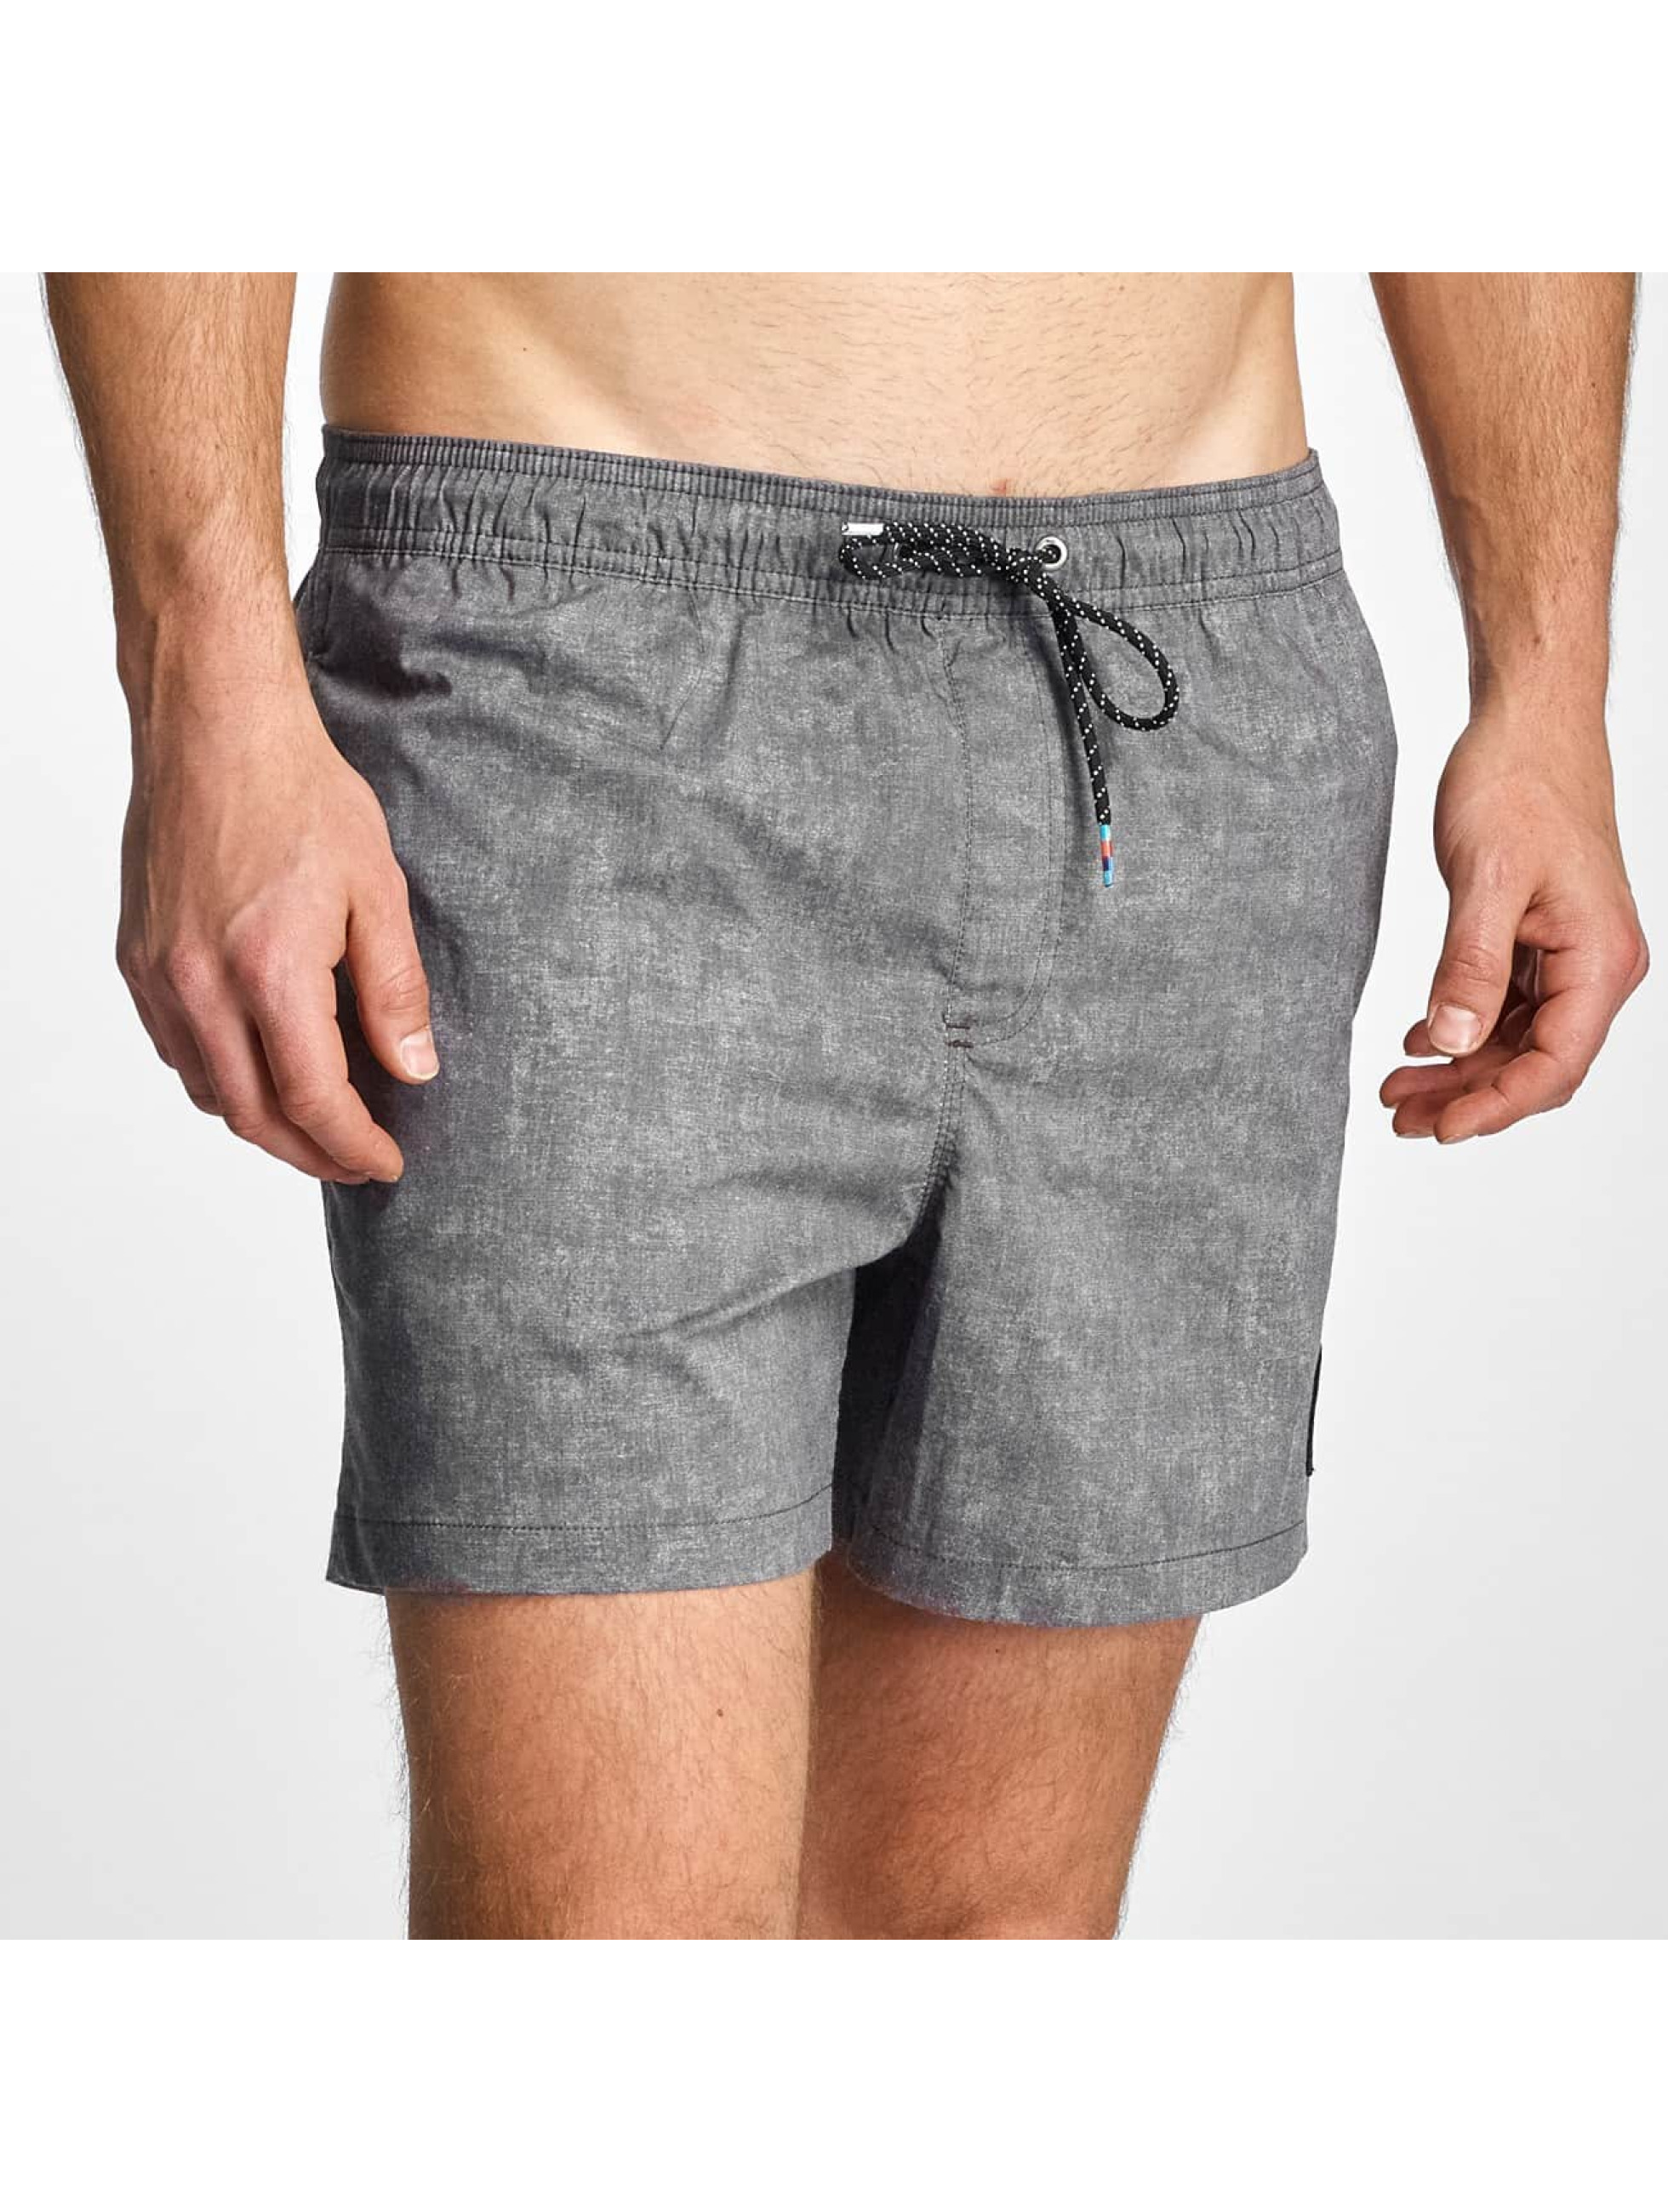 Quiksilver Swim shorts Acid Volley 15 grey